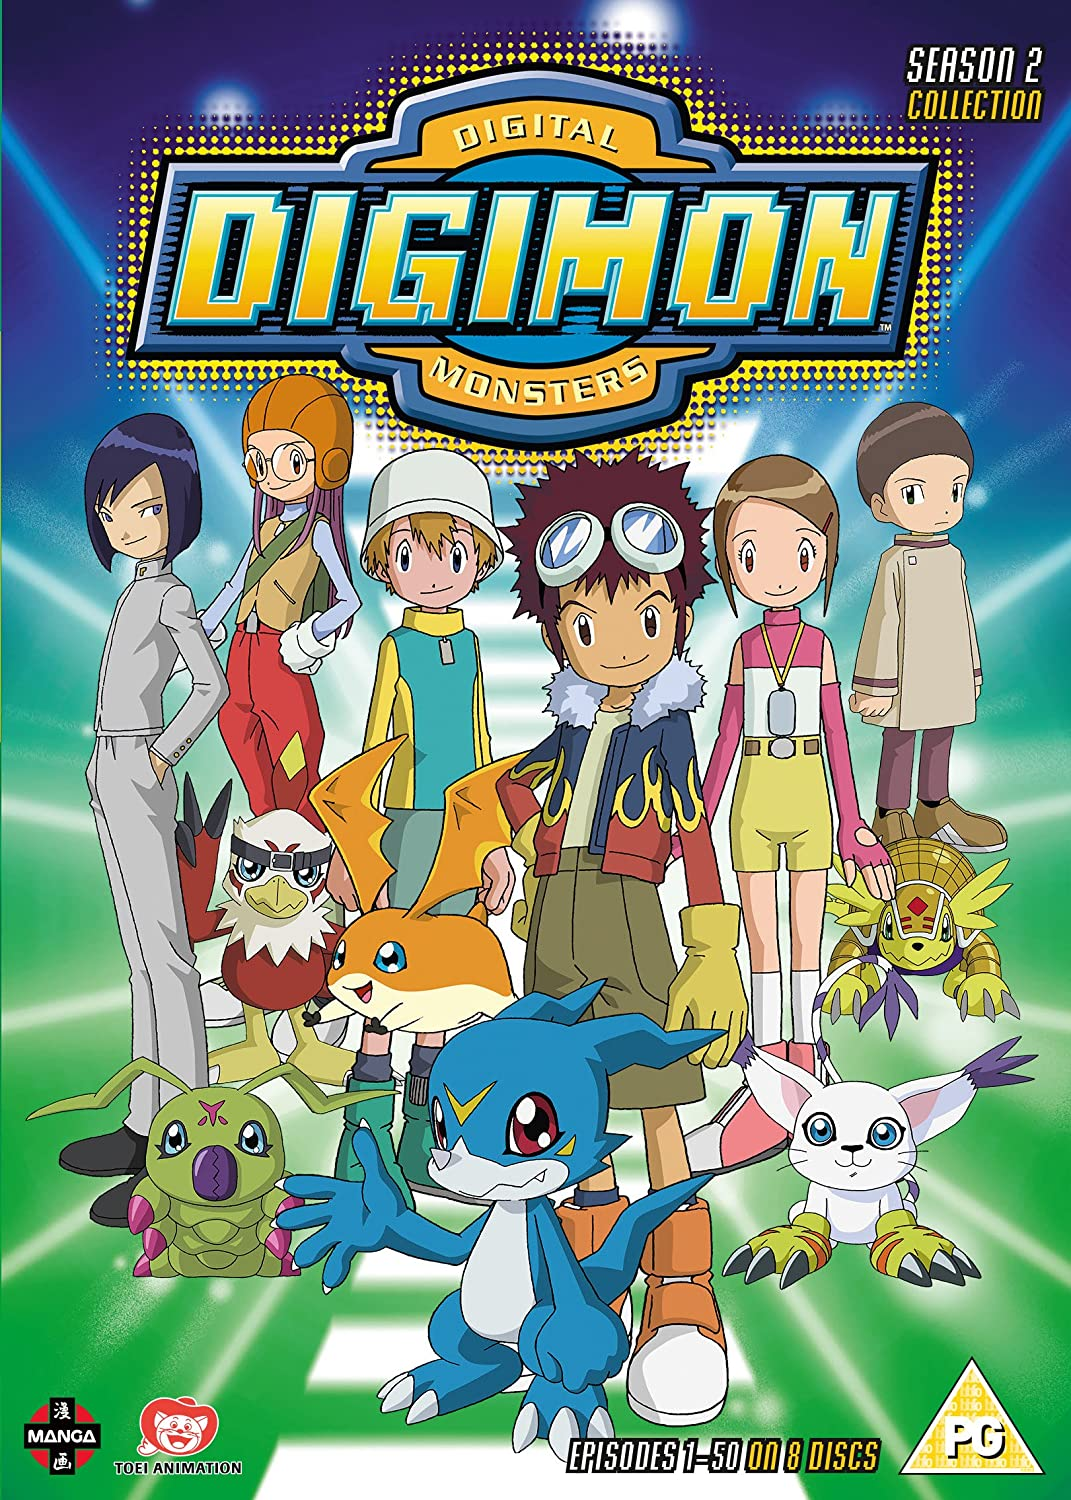 Image result for digimon digital monsters season 2 dvd cover manga entertainment